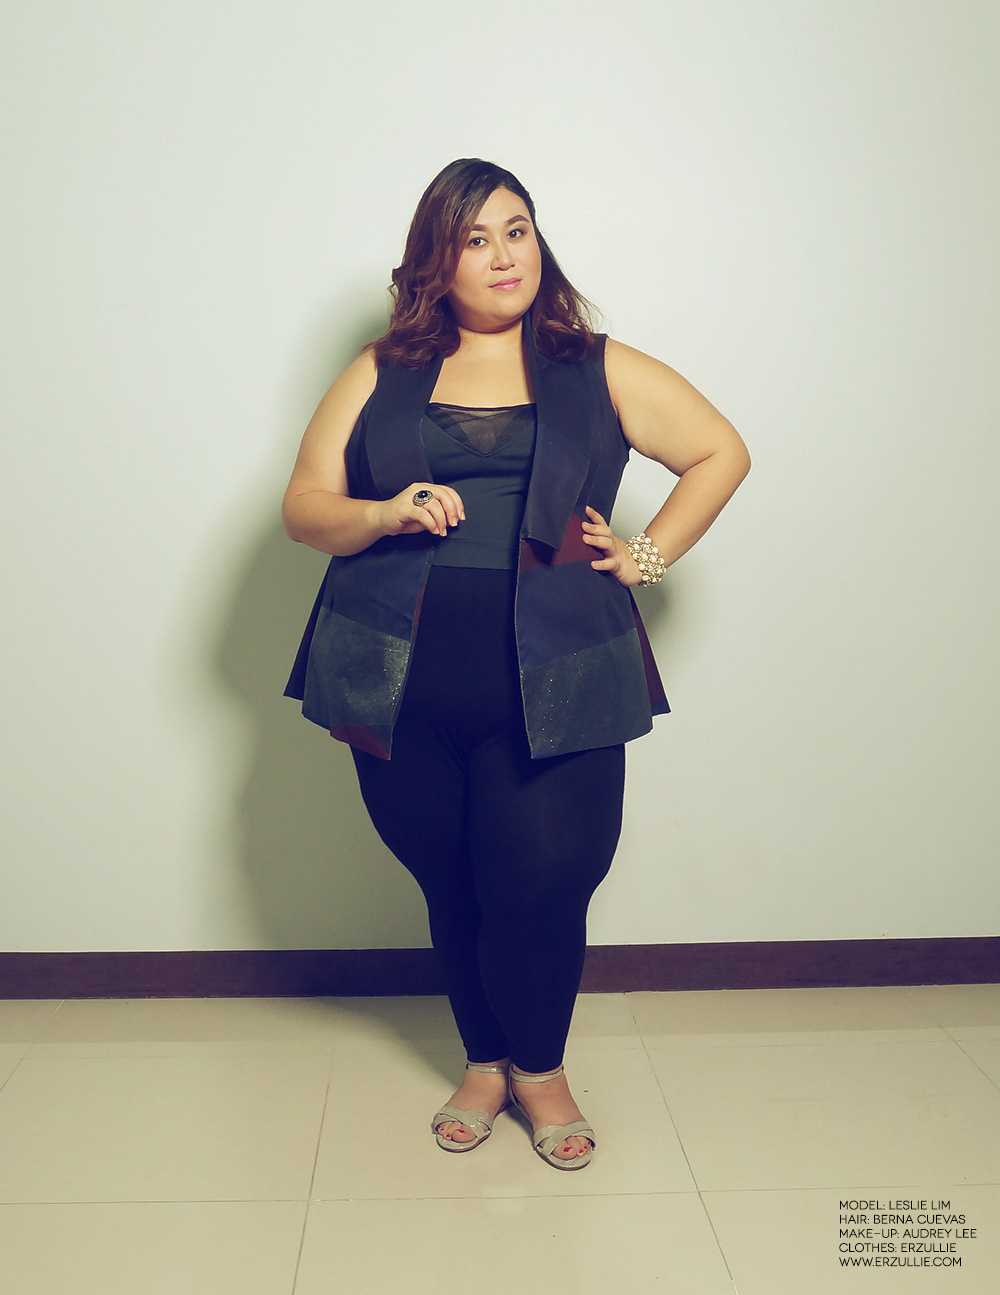 HD wallpapers plus size clothing philippines facebook